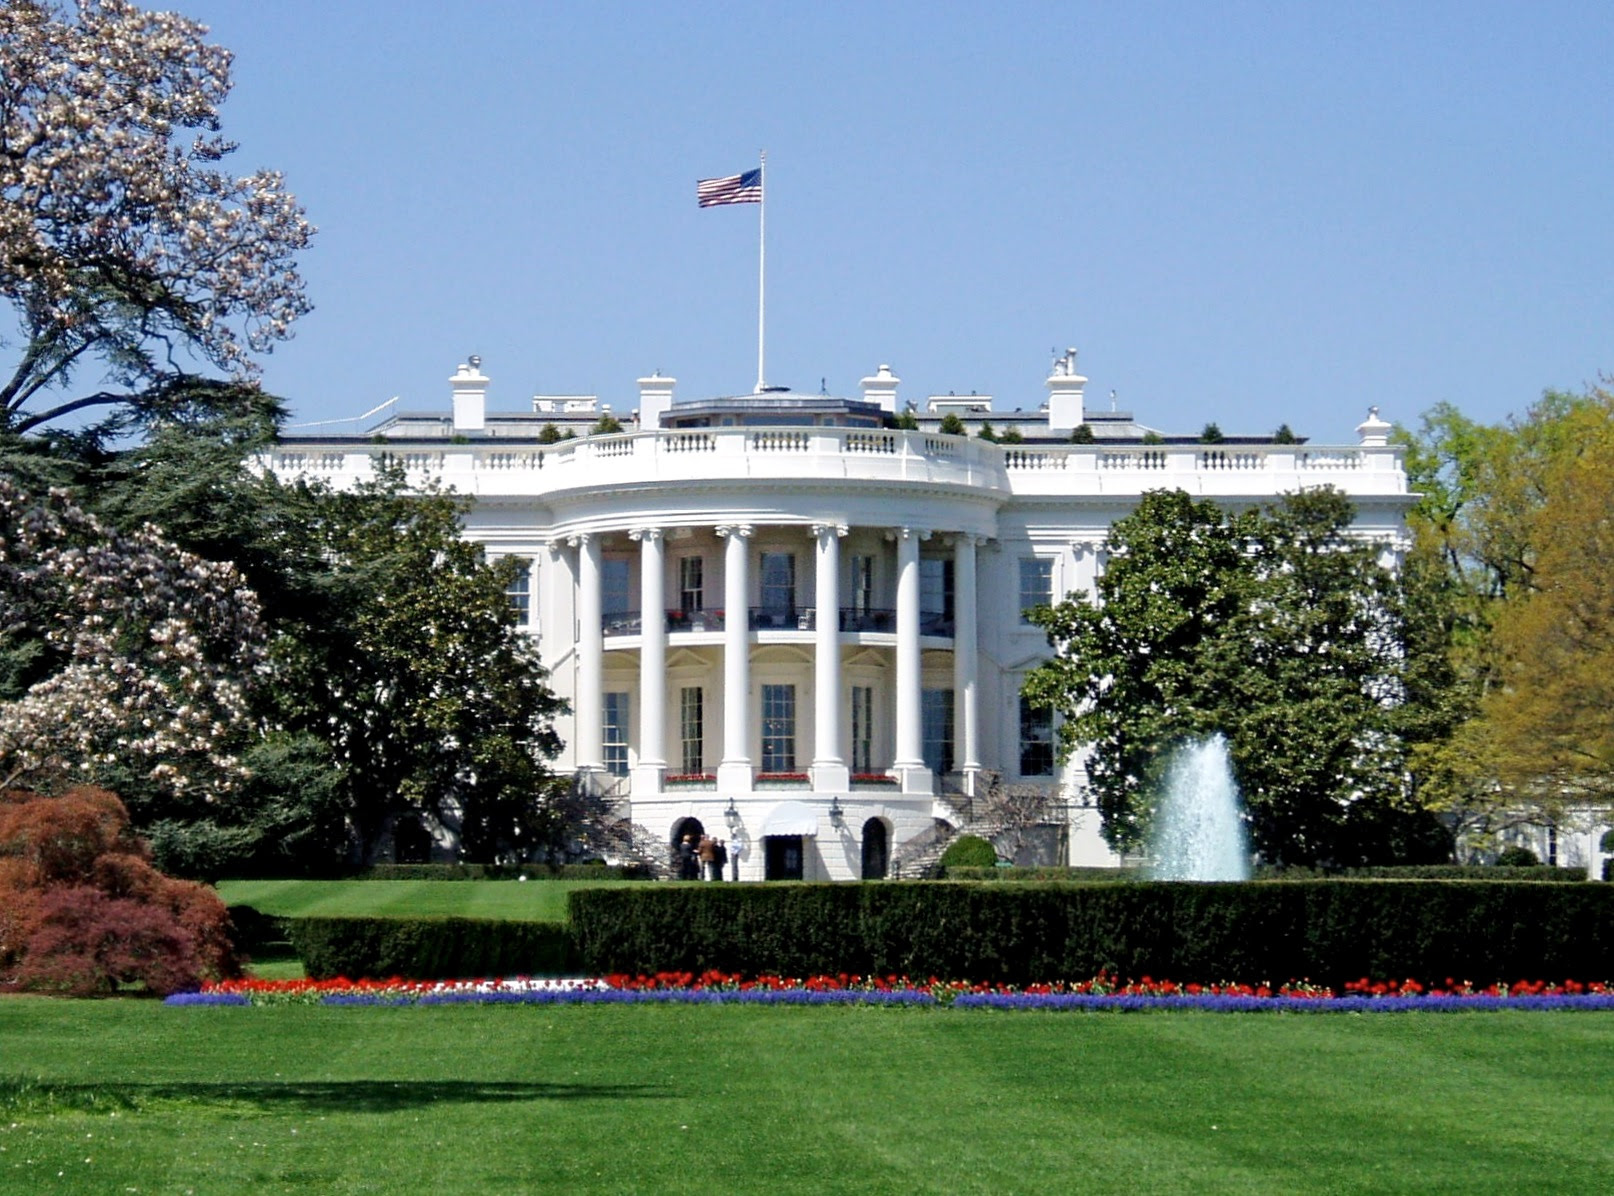 The Executive Mansion 'making the world safe for democracy.'